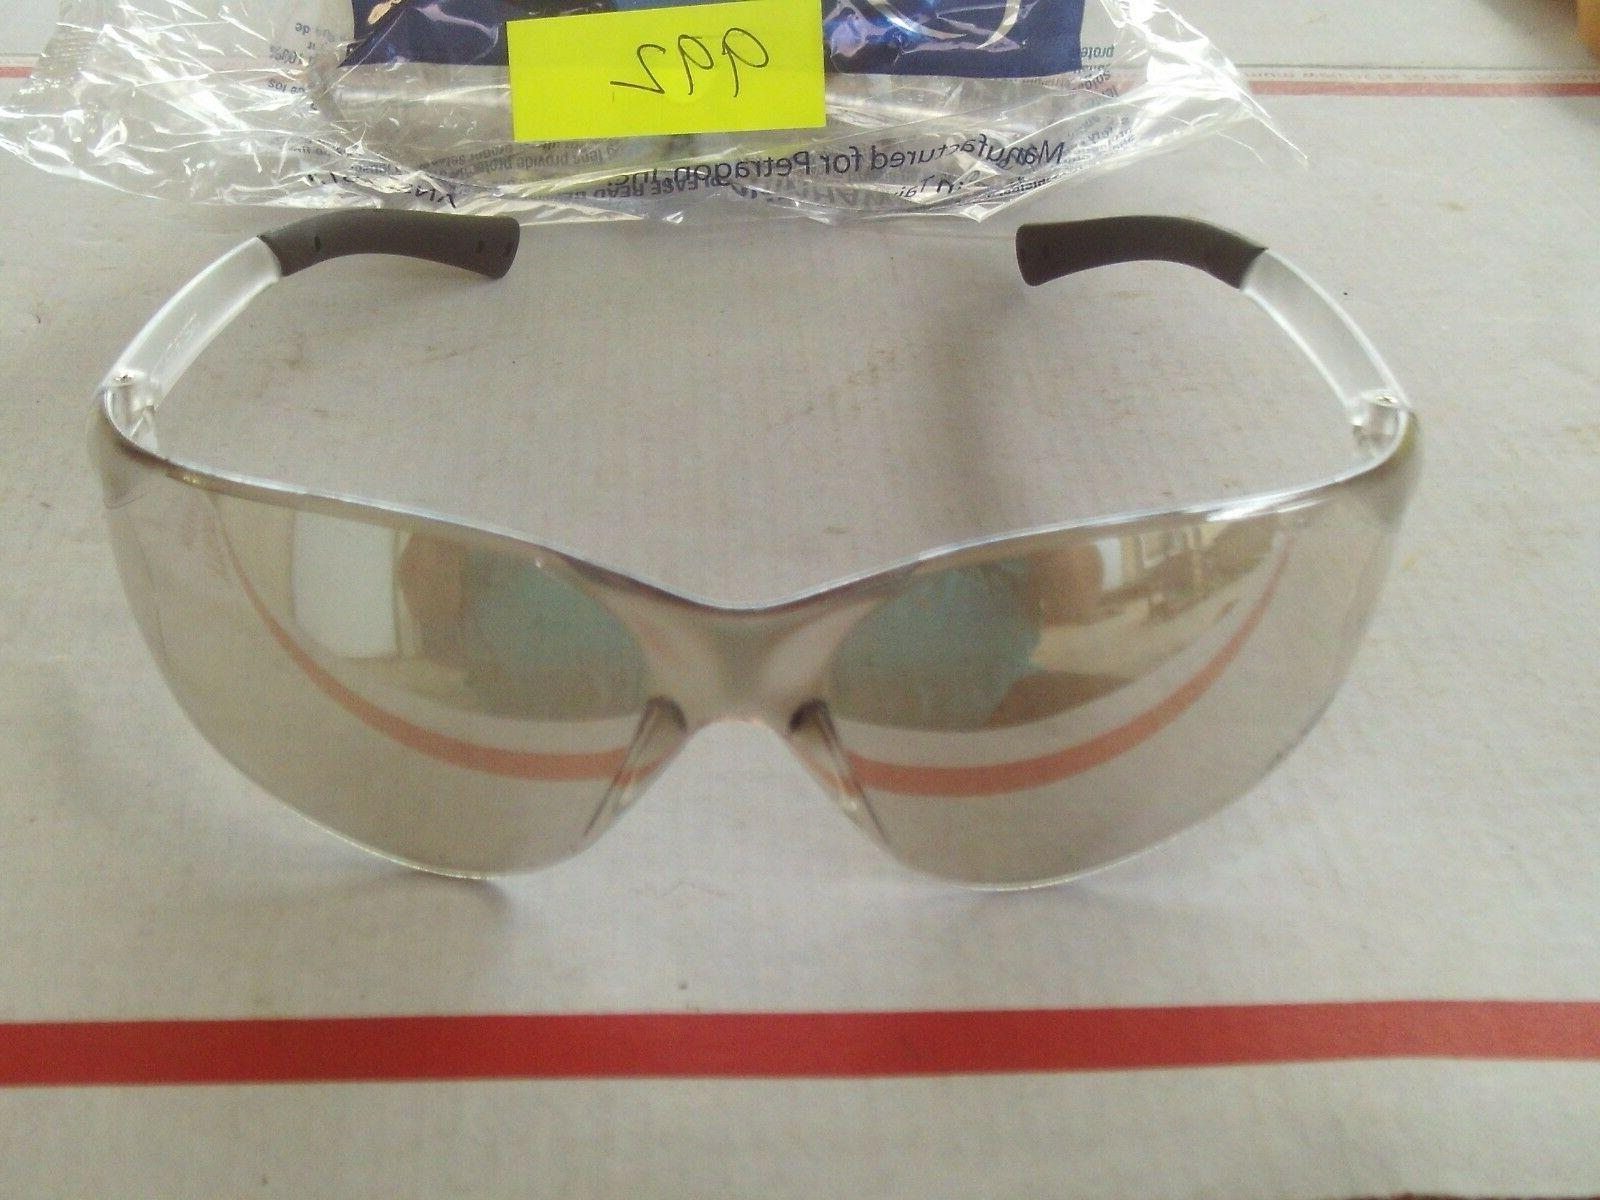 qty 2 safety glasses combo 1 slightly